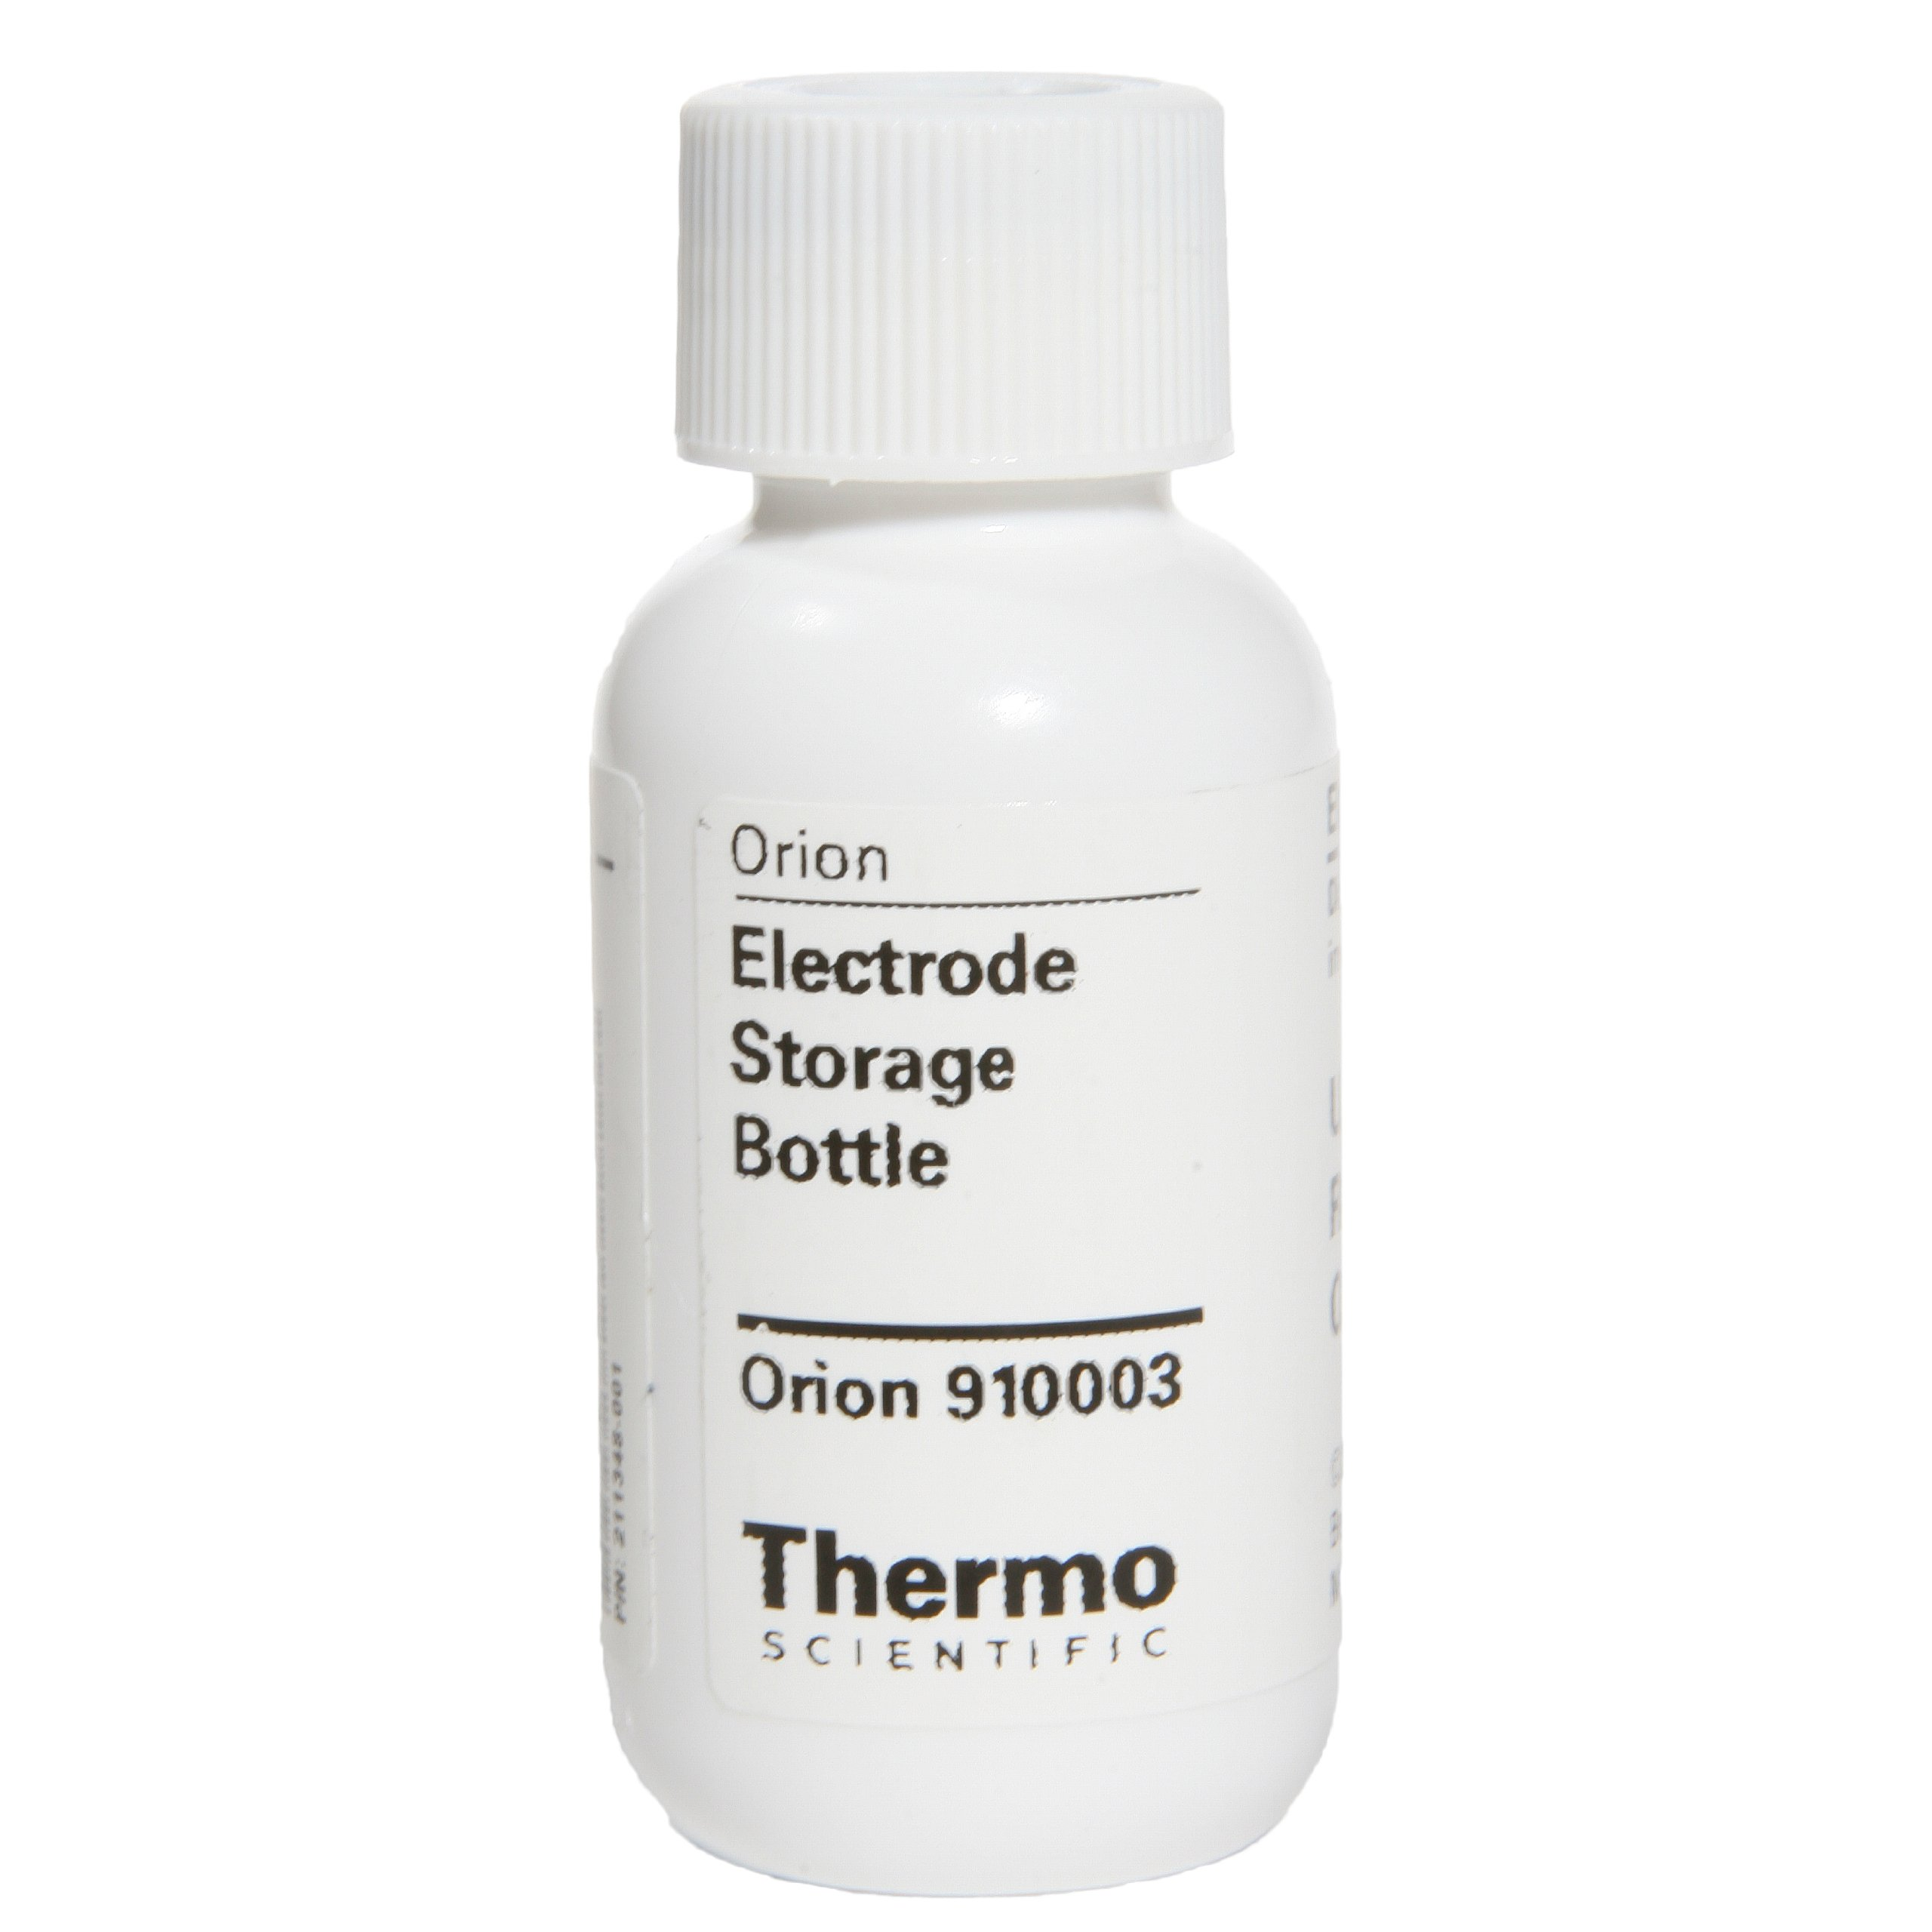 Thermo Scientific Orion 910003 Electrode Storage Bottle, with Screw Cap for 12mm Electrodes